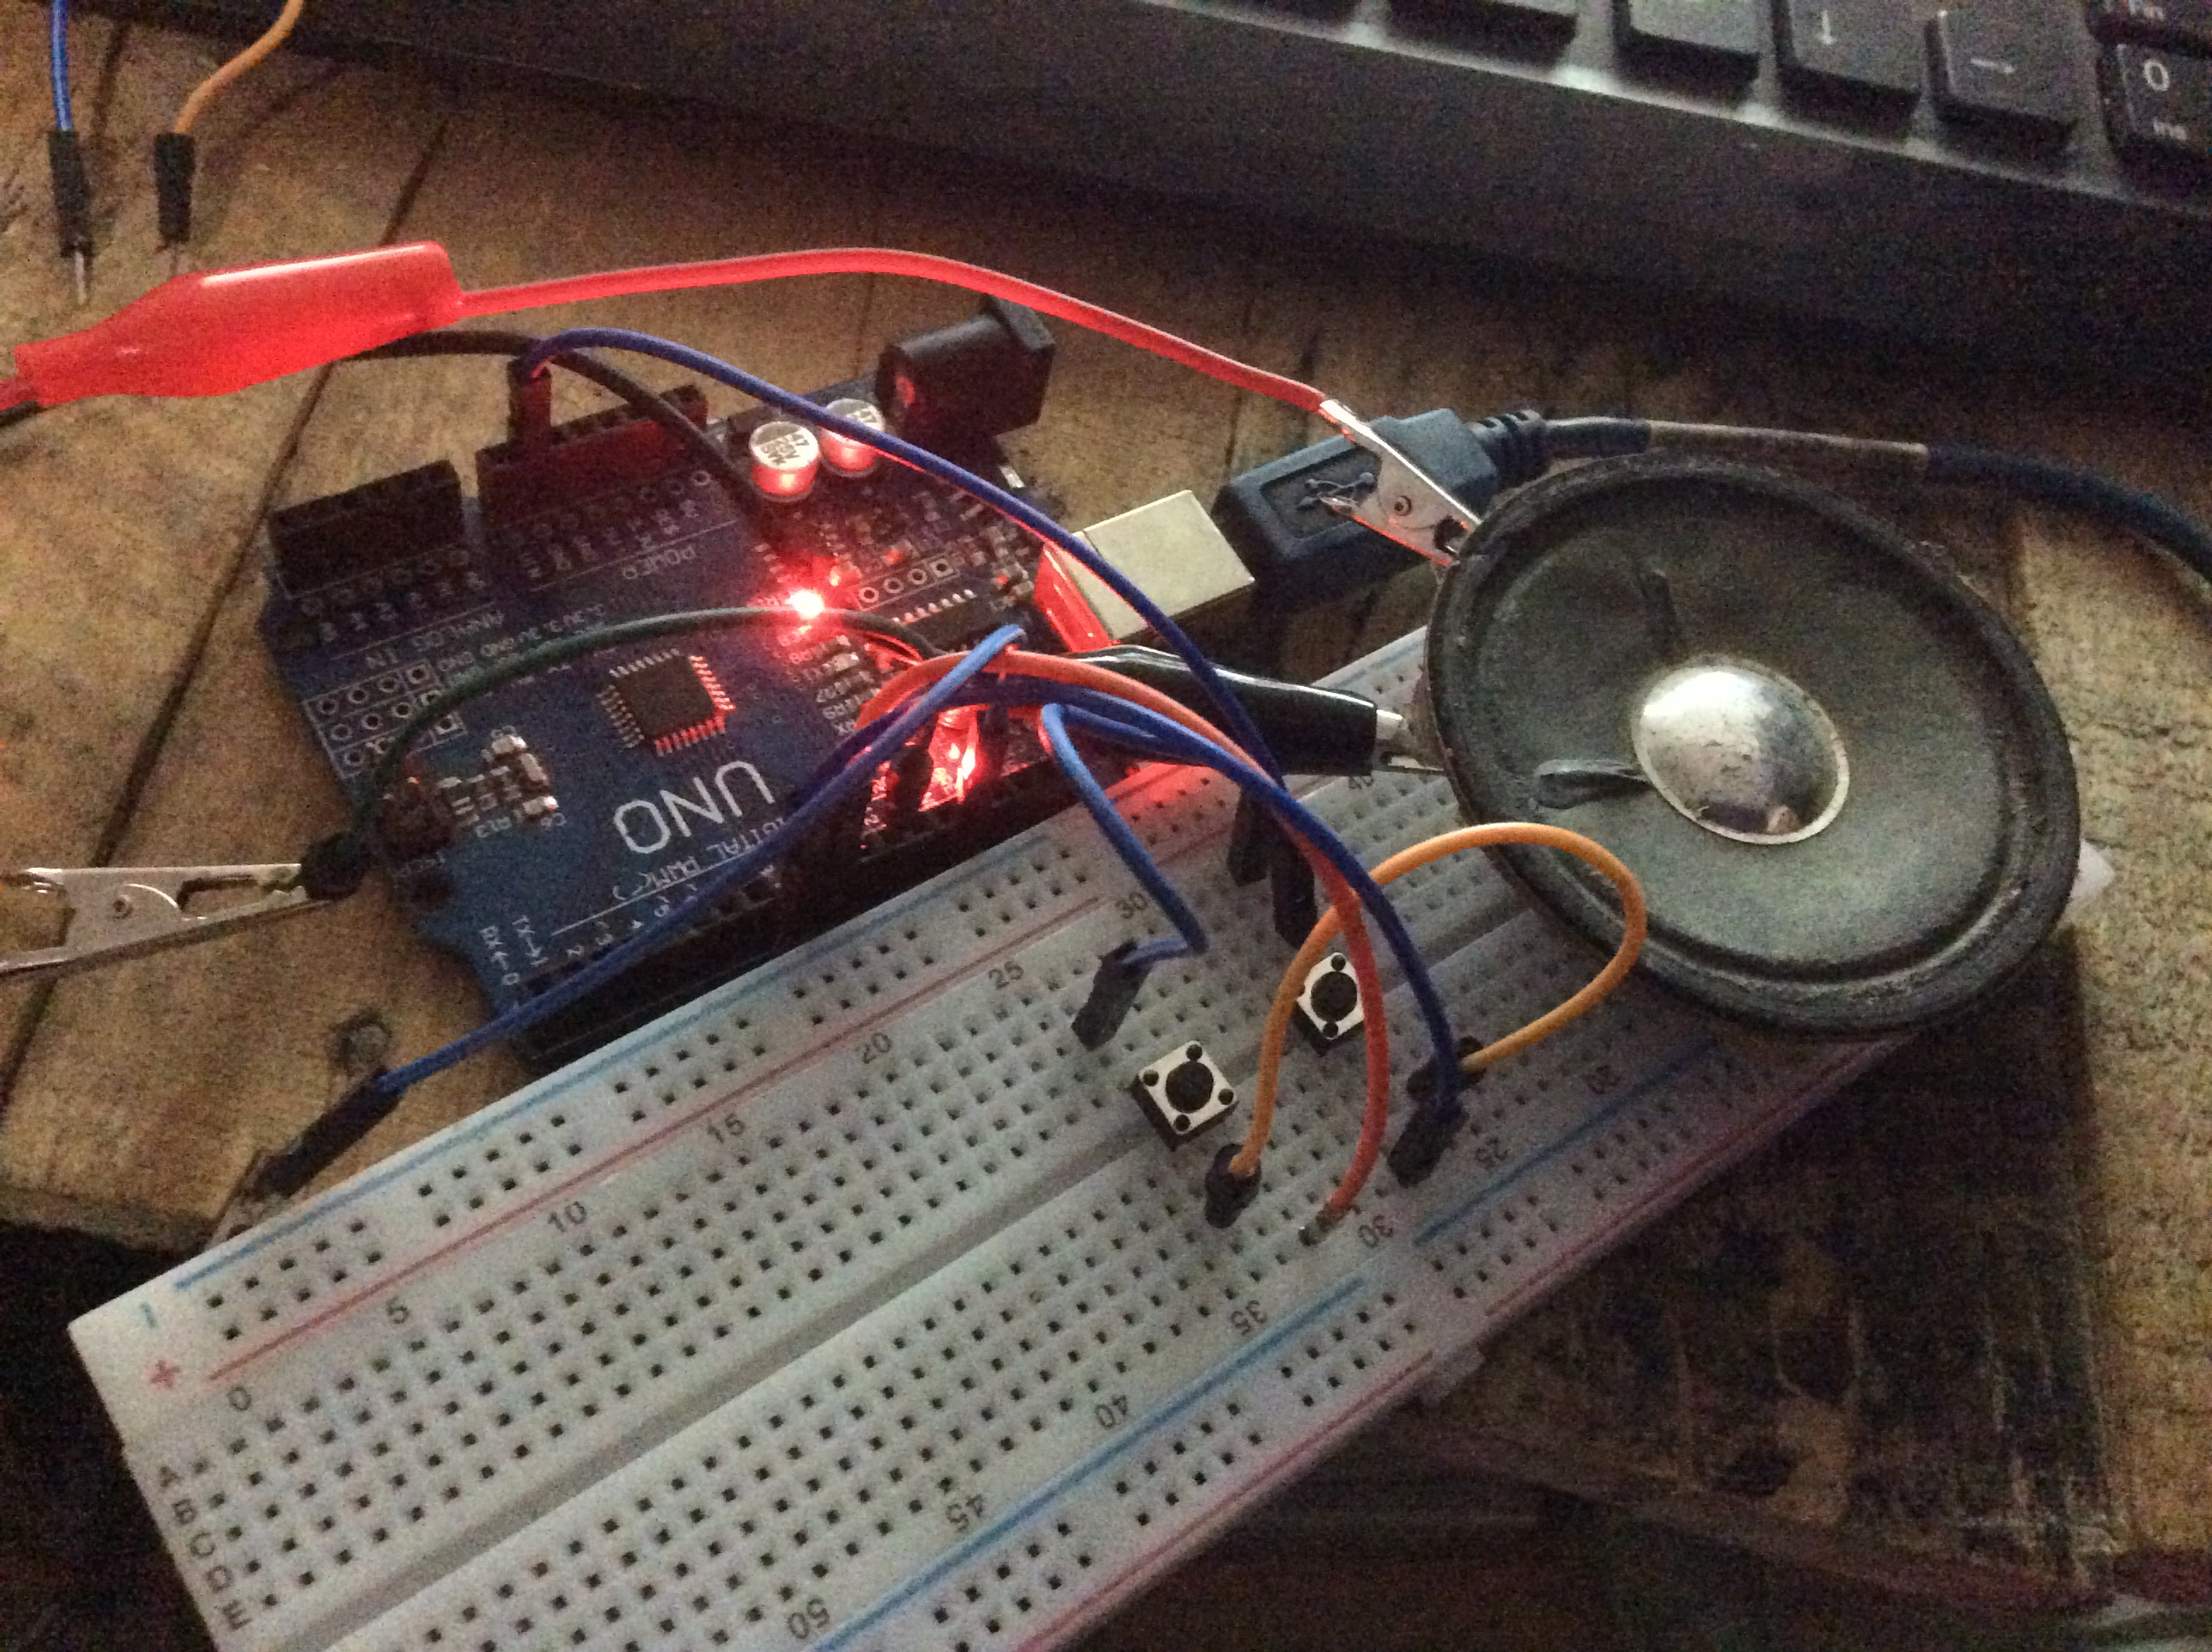 Loud Objects Noise Toy (AKA the Arduino Noise Machine)